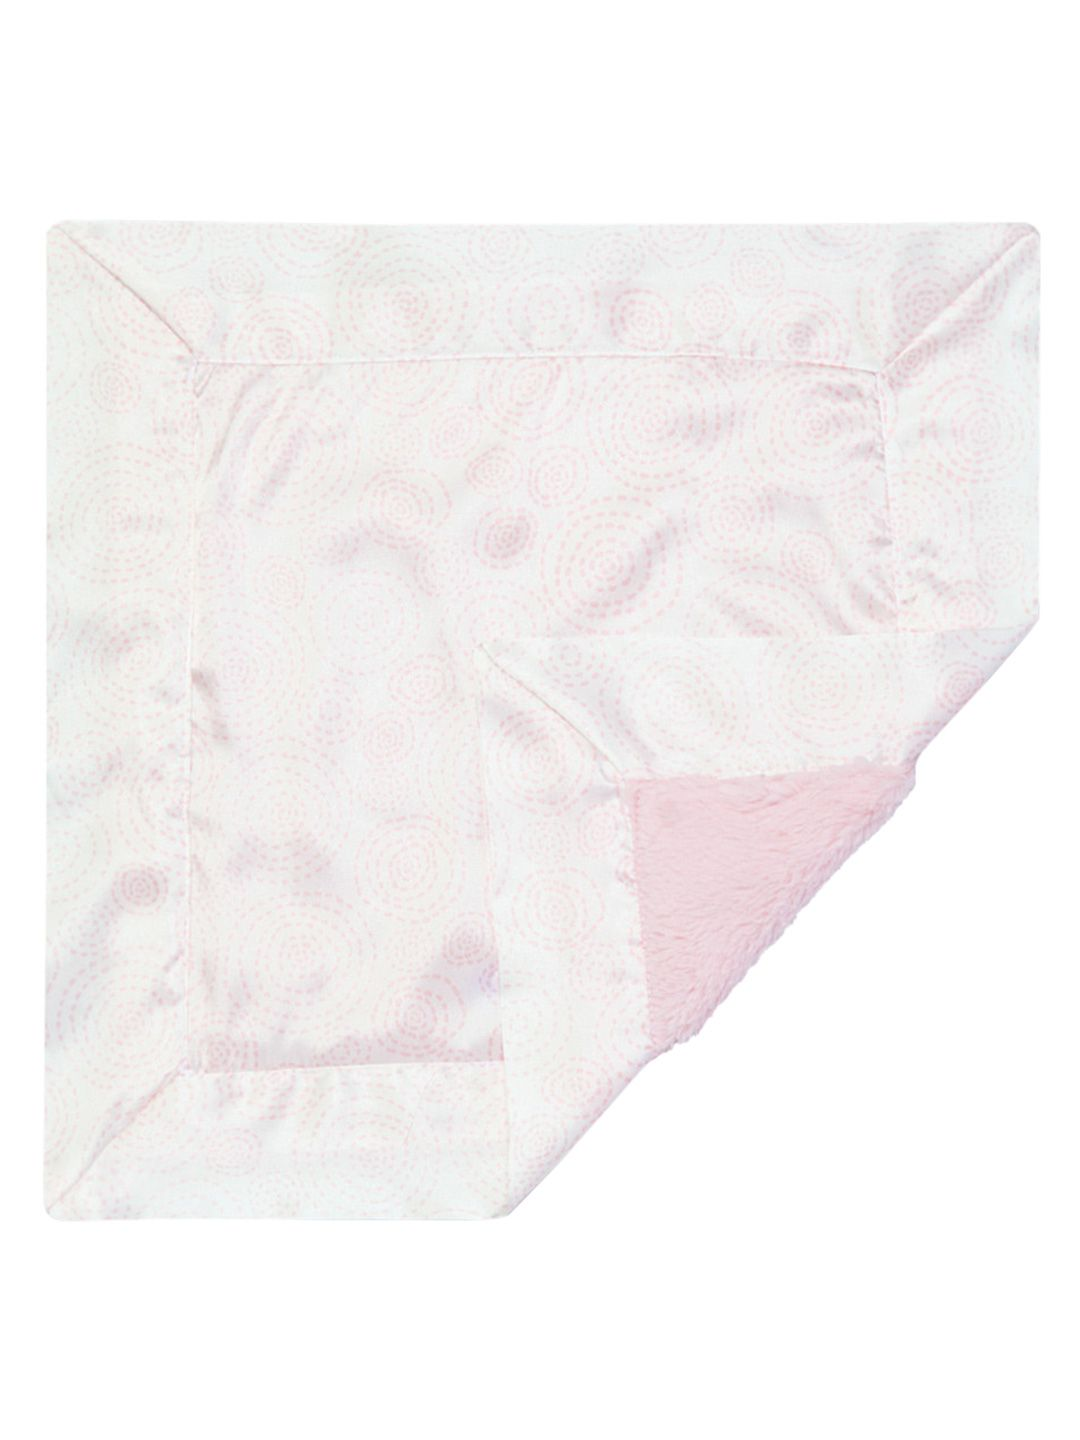 Luxe Soleil Security Blanky